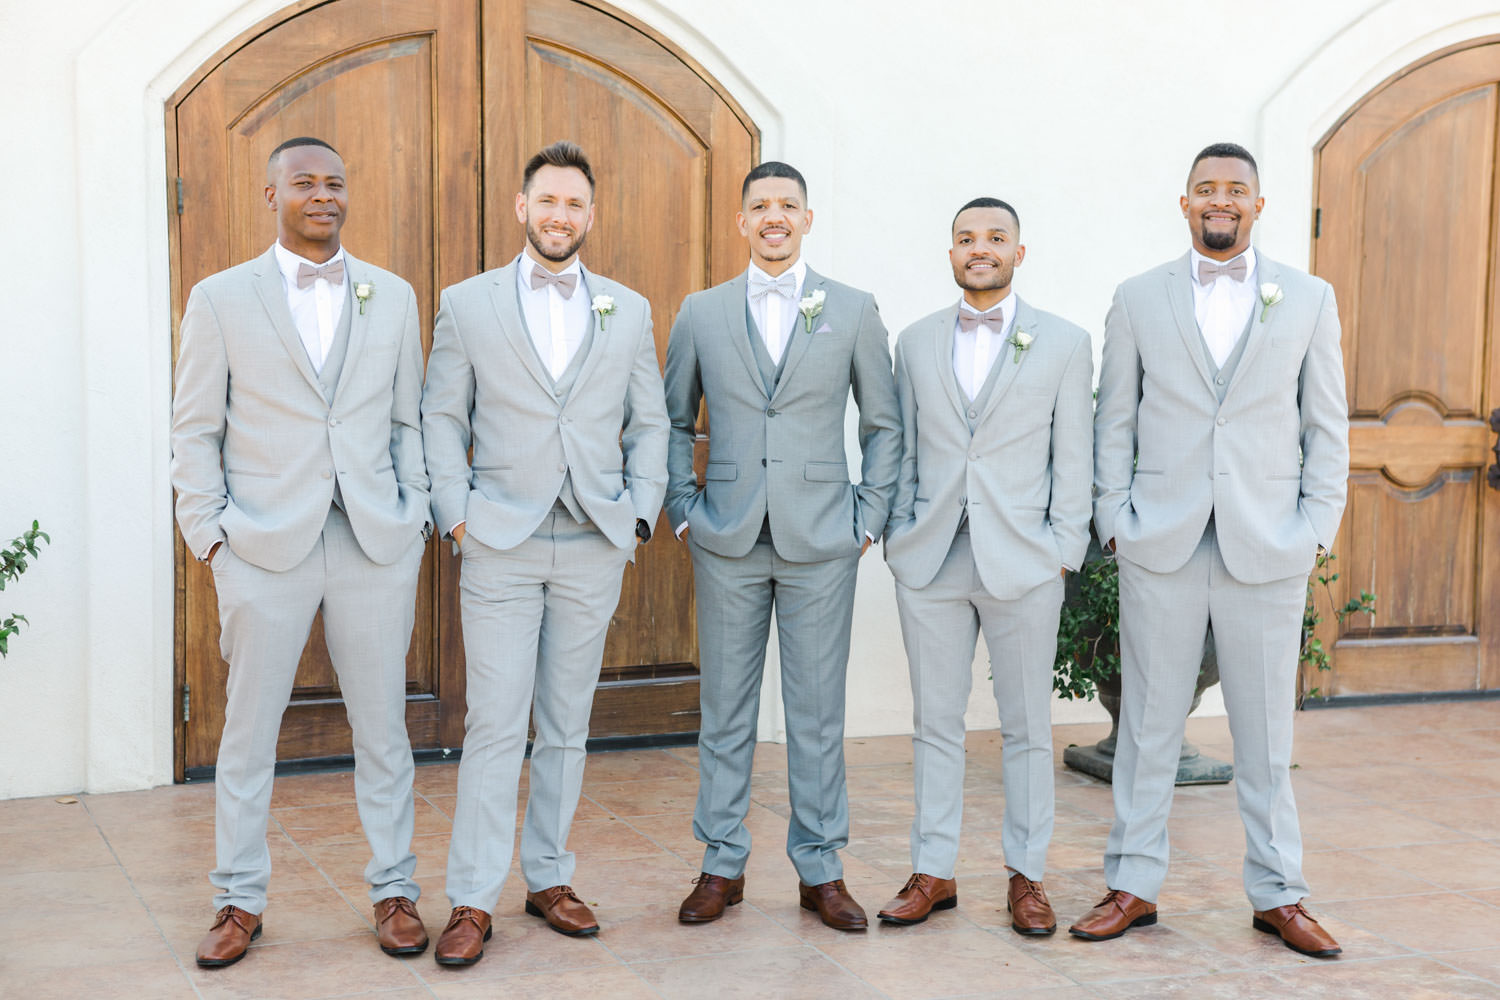 Groomsmen portrait in grey suits with white and green boutonnieres at Temecula Wedding at Villa De Amore, Cavin Elizabeth Photography